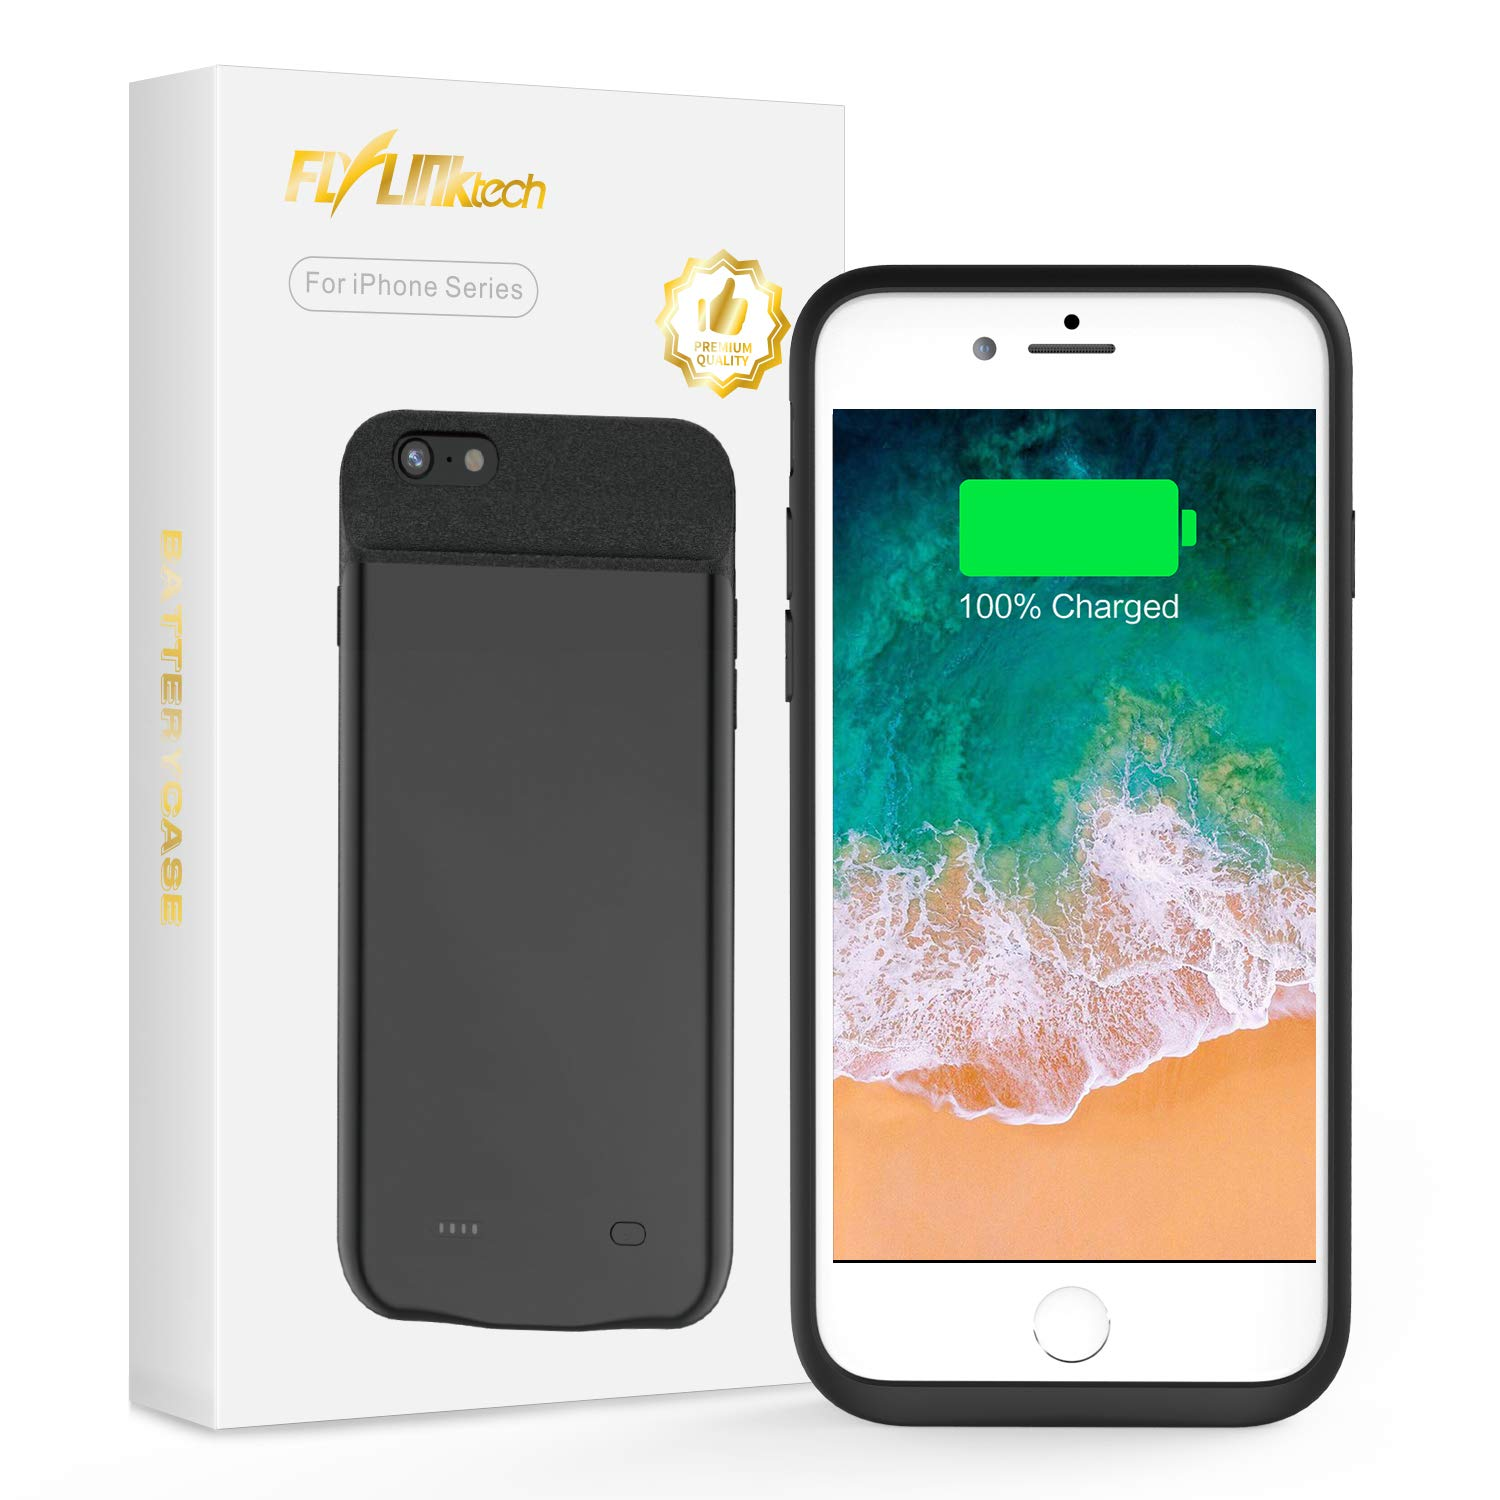 FLYLINKTECH for iPhone 6 Plus/6s Plus/7 Plus/8 Plus Battery Case, 8500mAh Portable Protective Charging Case Extended Rechargeable Battery Pack Charger Case (5.5 inch, Black)